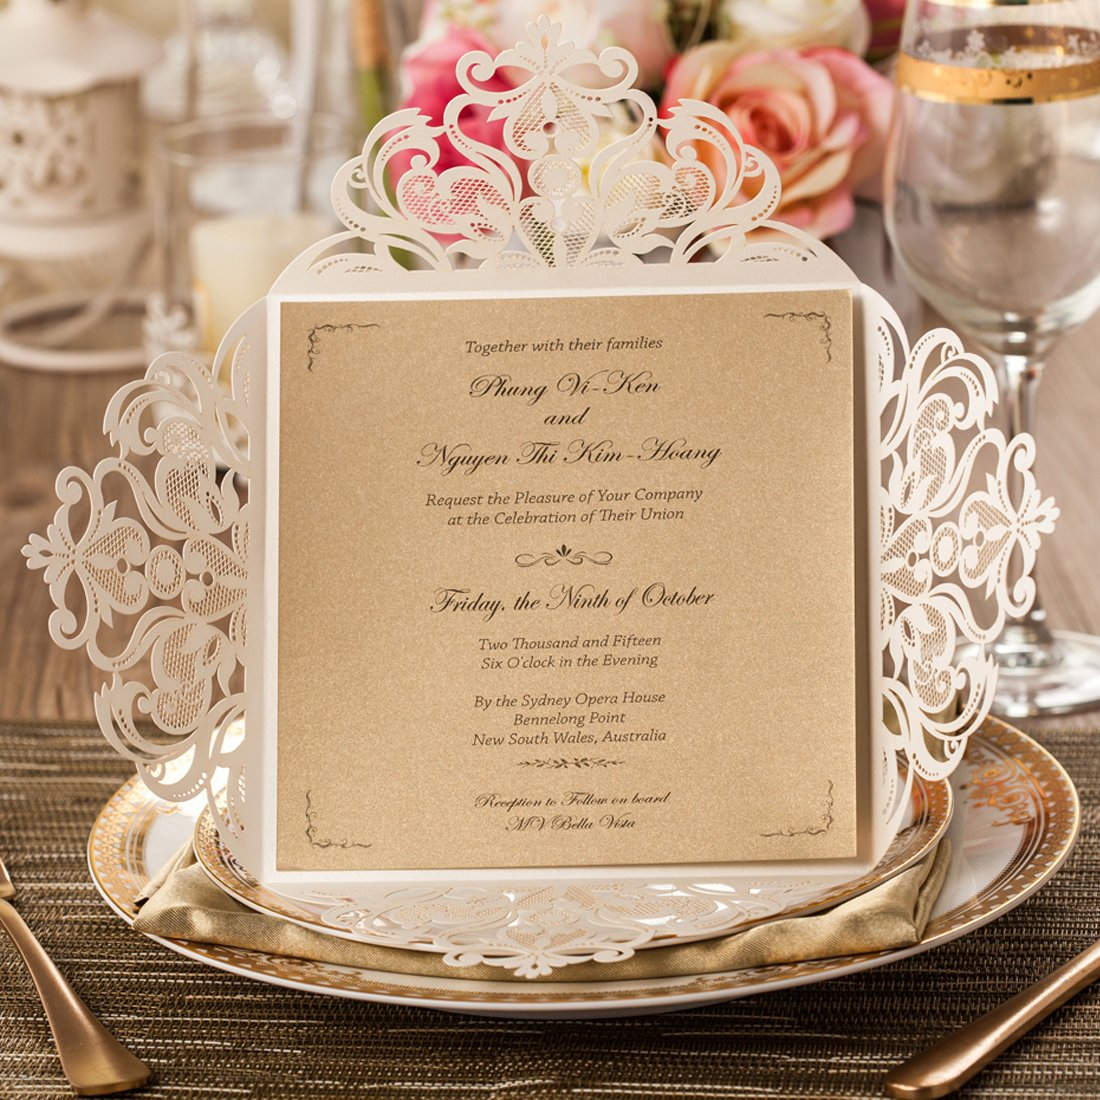 Amazon.com: Wishmade 50x Beige Laser Cut Square Wedding ...